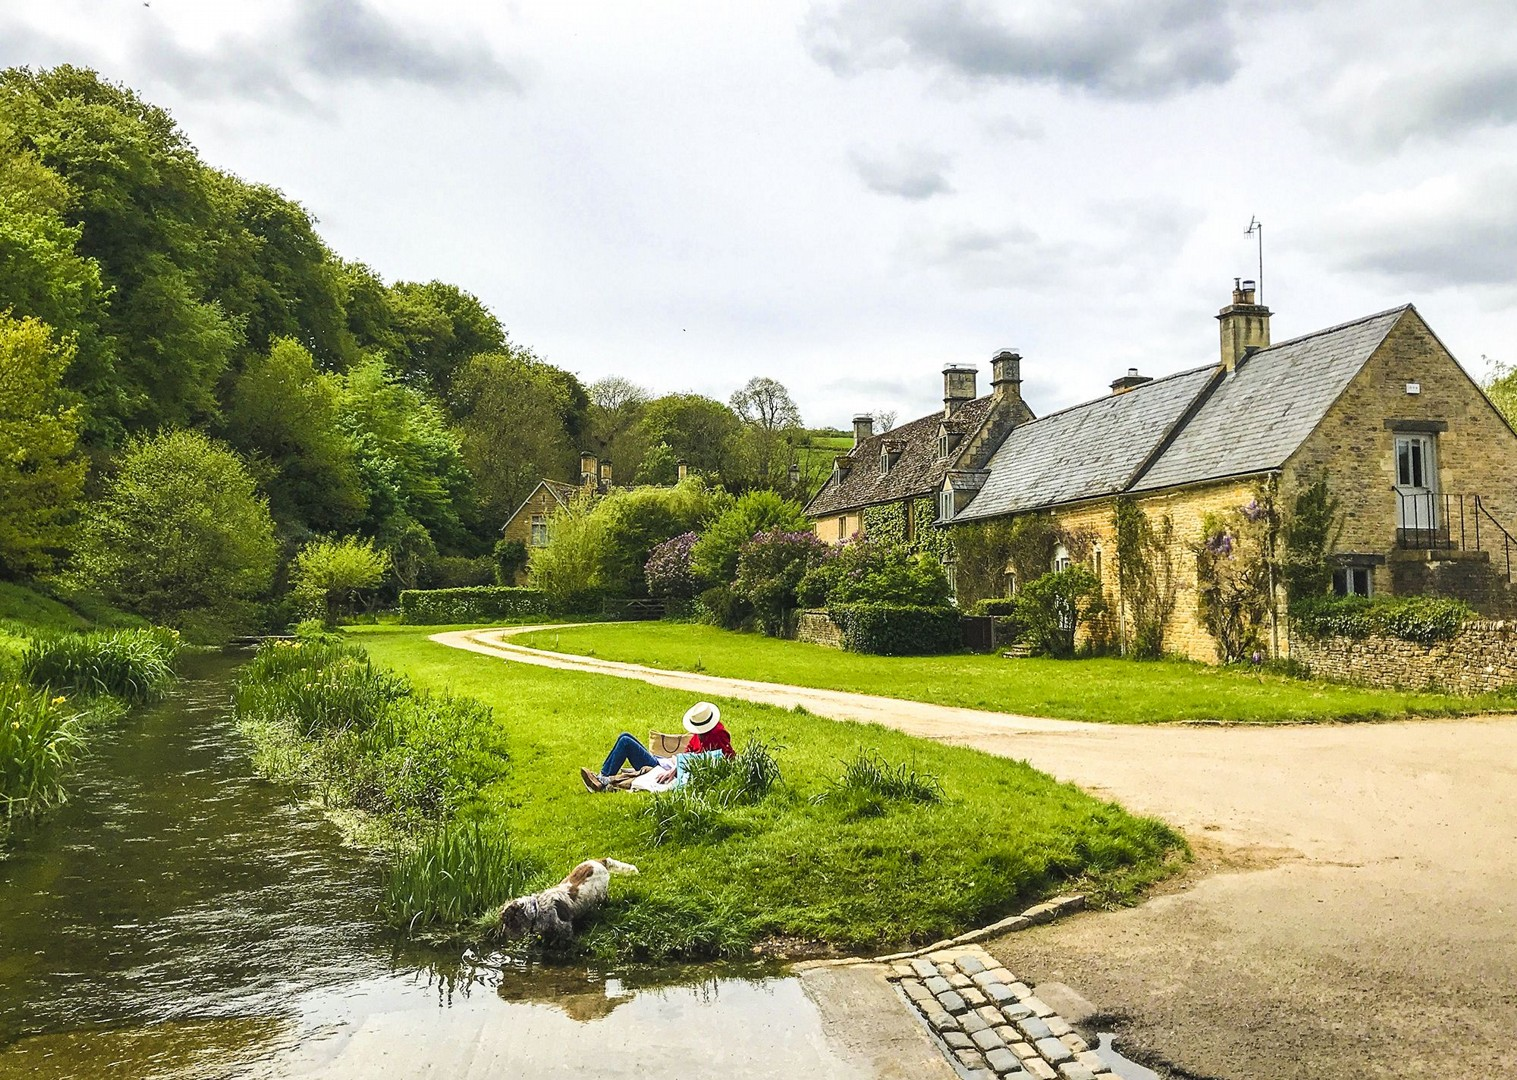 saddle-skedaddle-bourton-on-the-water-guided-leisure-cycling-holiday-uk-fun-picnics.jpg - UK - Cotswolds - Bourton-on-the-Water - Guided Leisure Cycling Holiday - Leisure Cycling